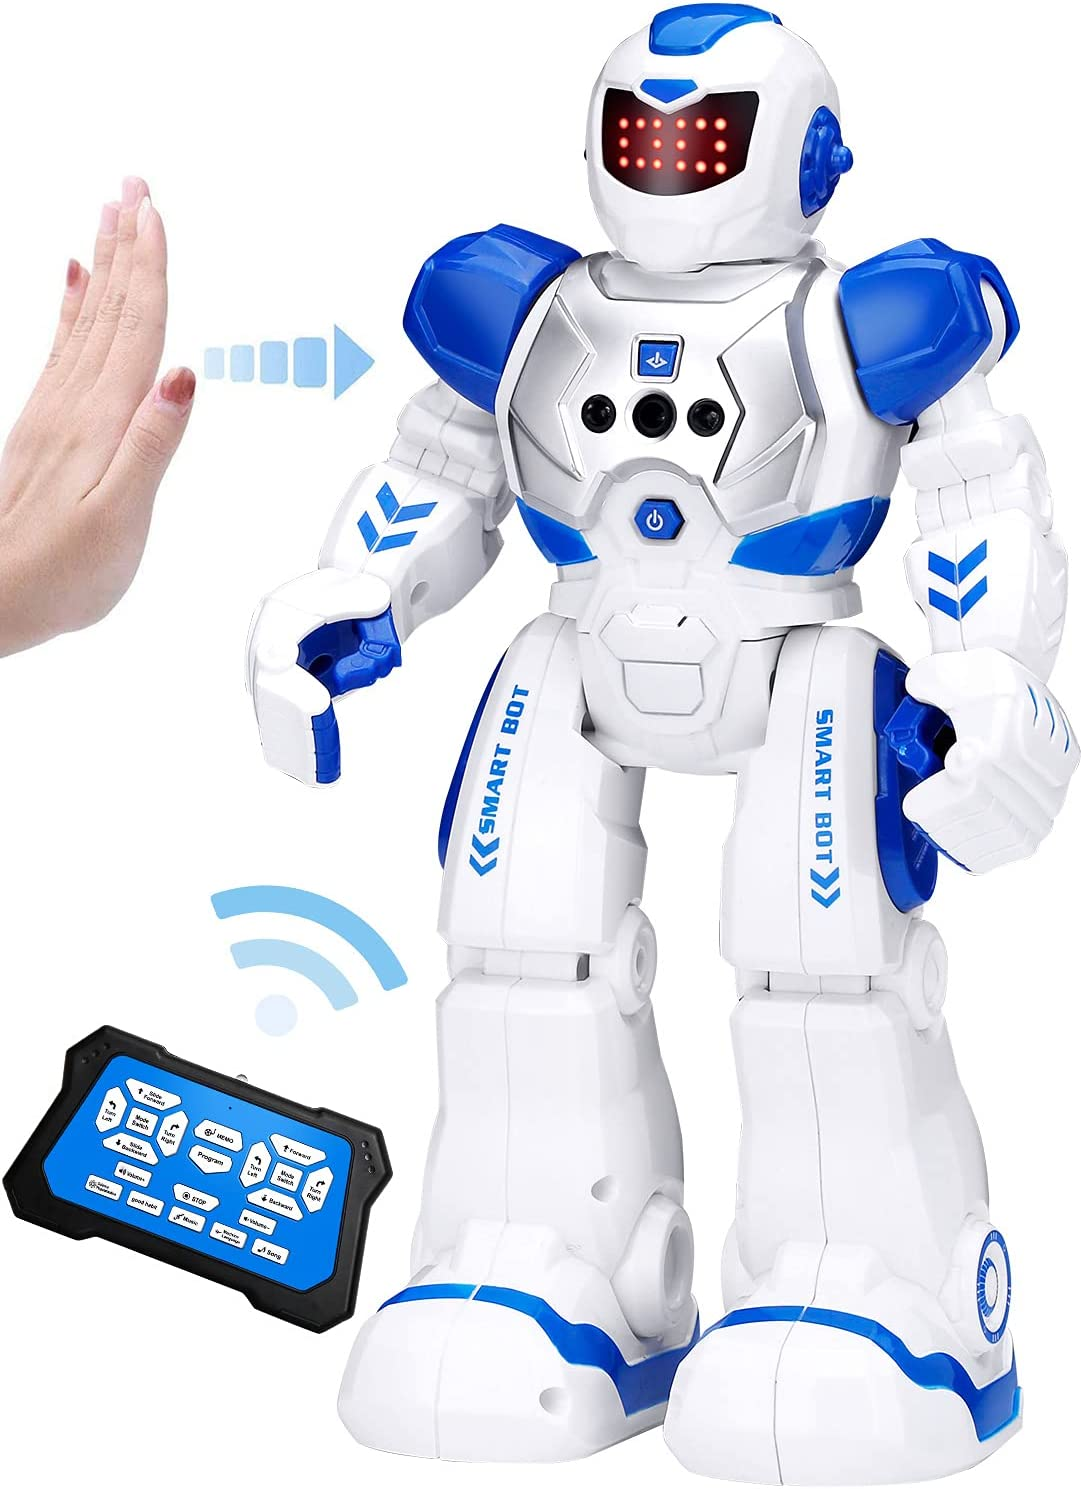 KingsDragon Super beauty product restock quality Max 82% OFF top Robots Toy for Kids Interac RC Sensing Gesture